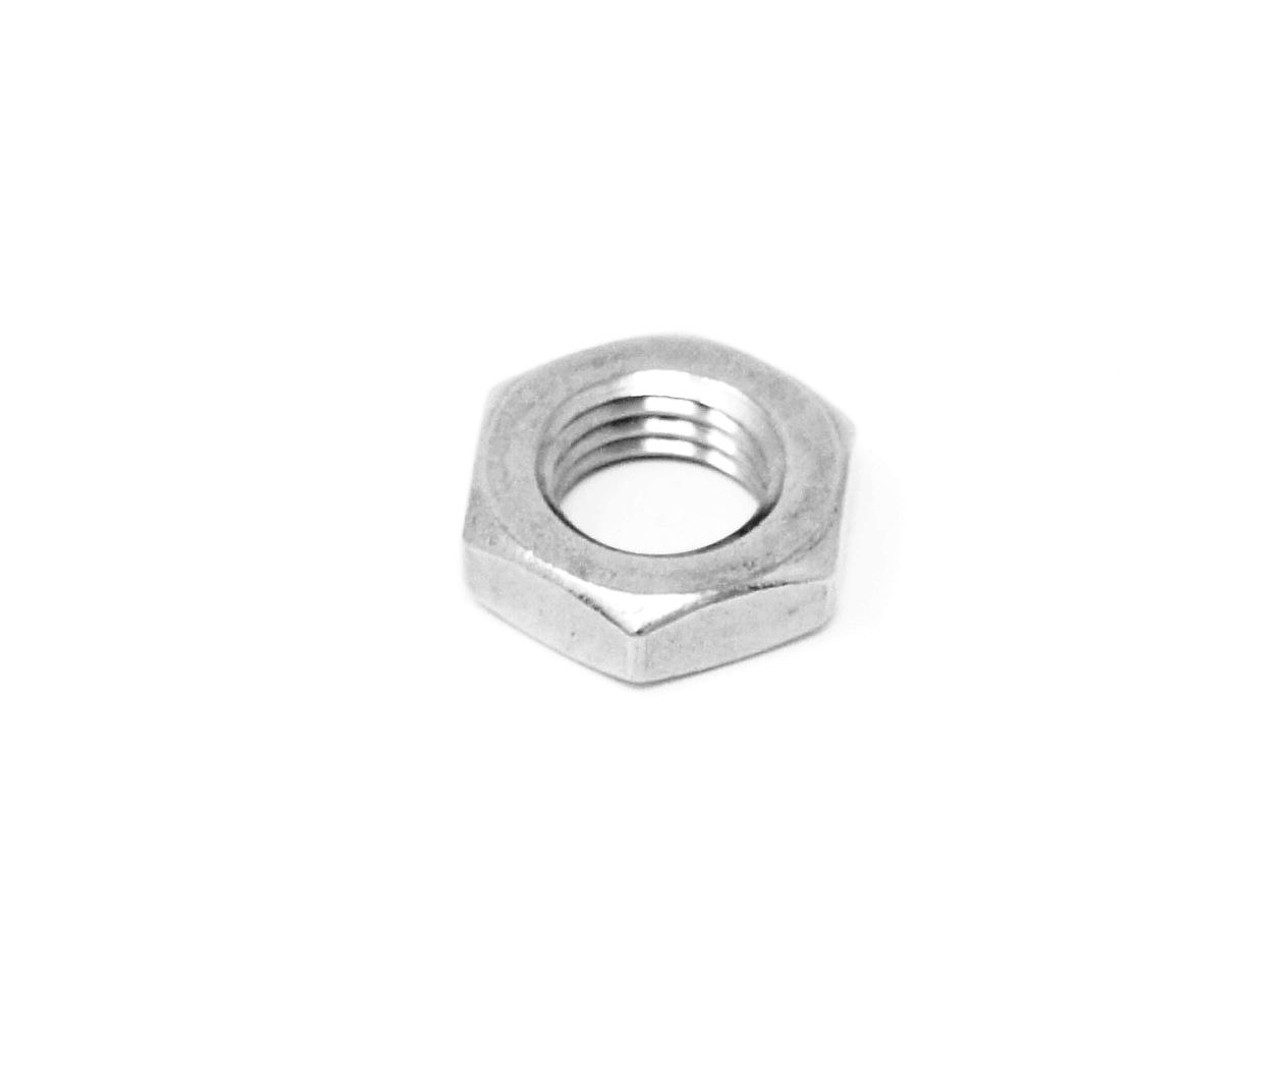 12. NUT IDLER PULLEY SPINDLE STAINLESS